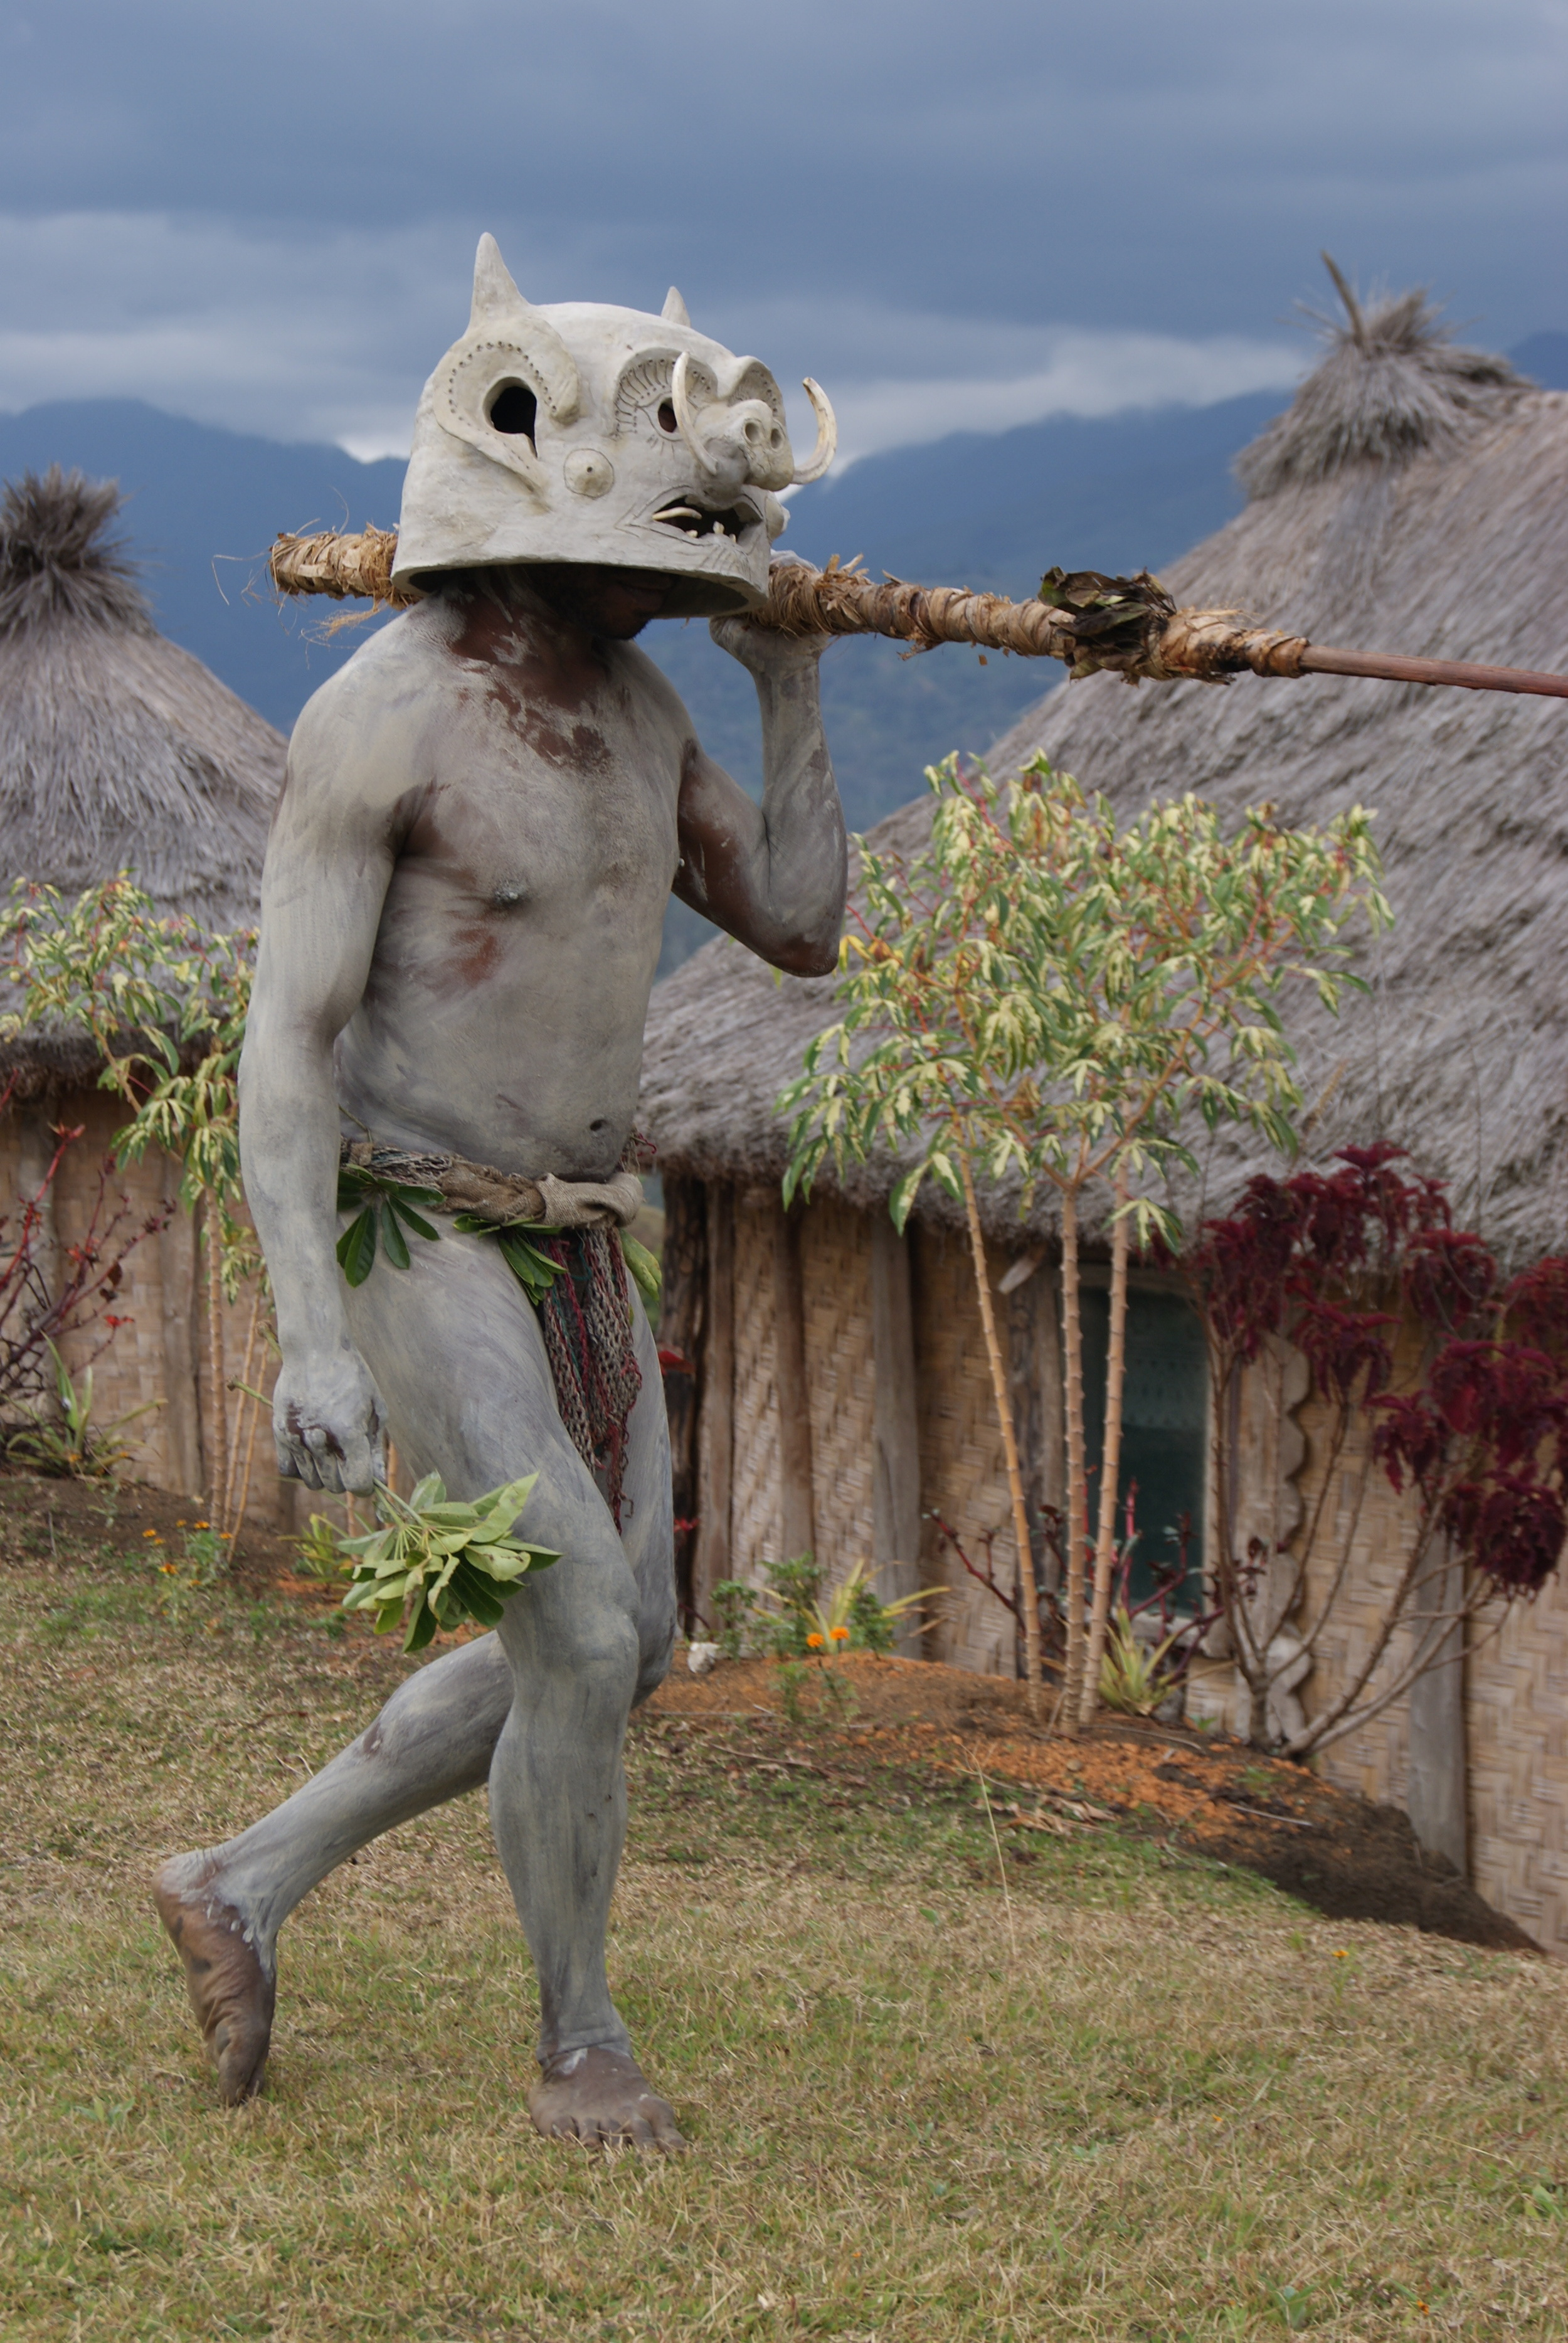 The famous Asaro Mudmen - originally introduced to the world by National Geographic